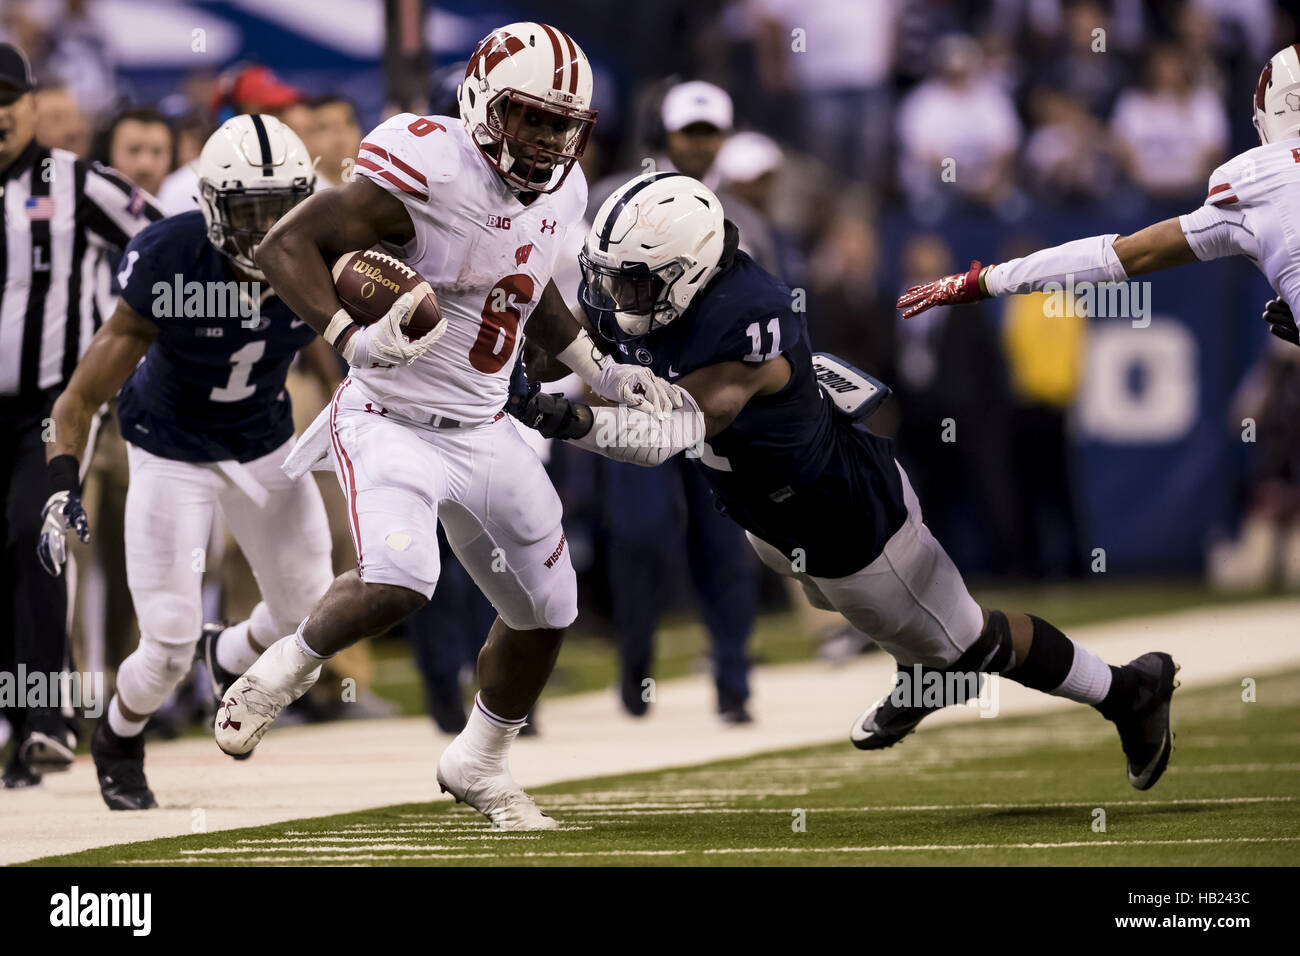 Indianapolis, Indiana, USA. 3rd Dec, 2016. December 3, 2016 - Indianapolis, Indiana - Penn State Nittany Lions linebacker - Stock Image